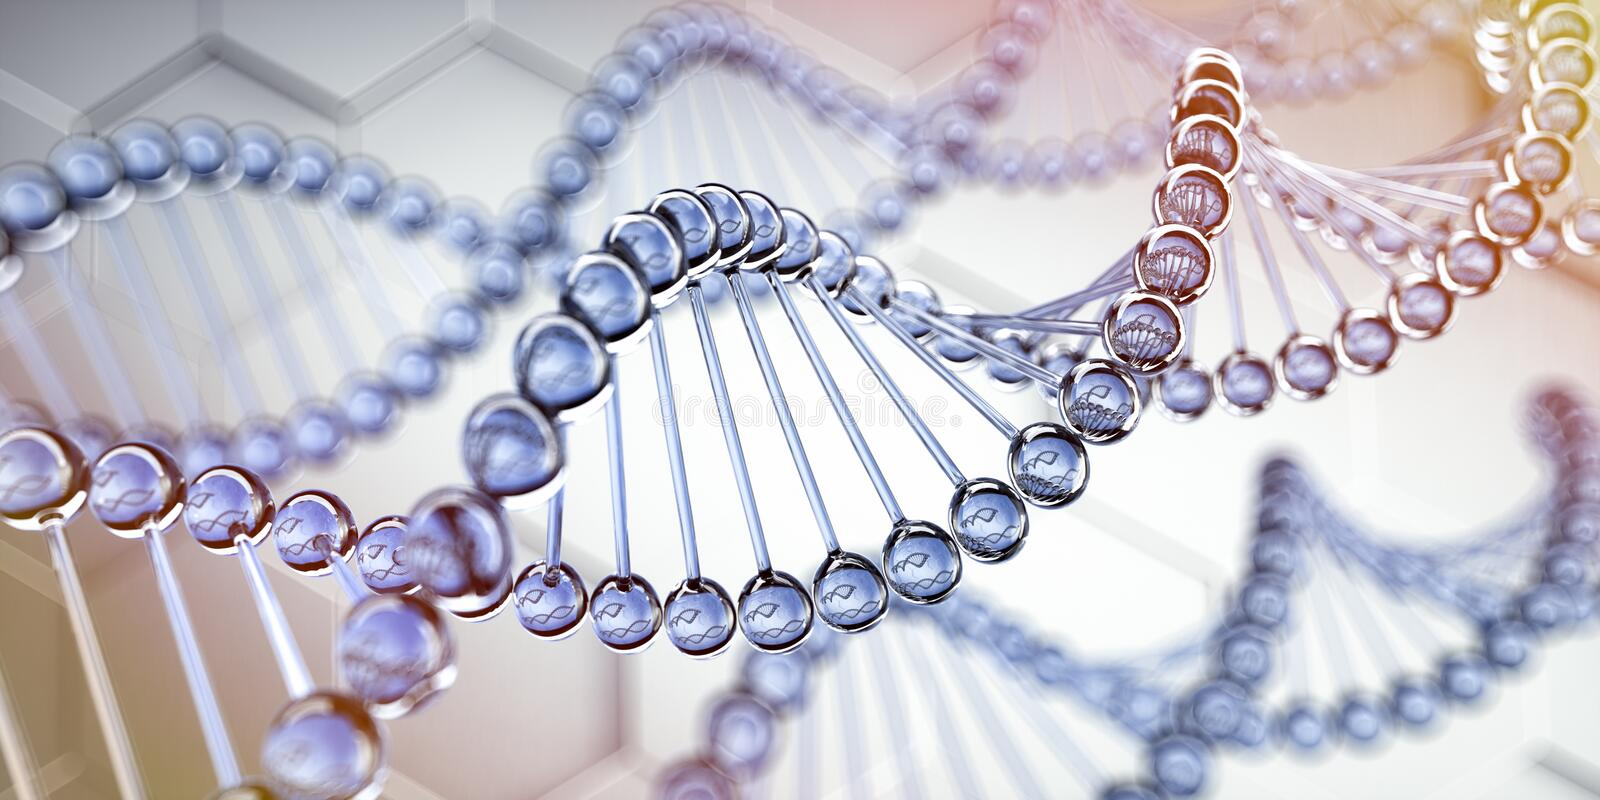 Complex DNA - medical 3D illustration. DNA glass structures closeup against a blue backdrop - medical 3D illustration - rendering vector illustration